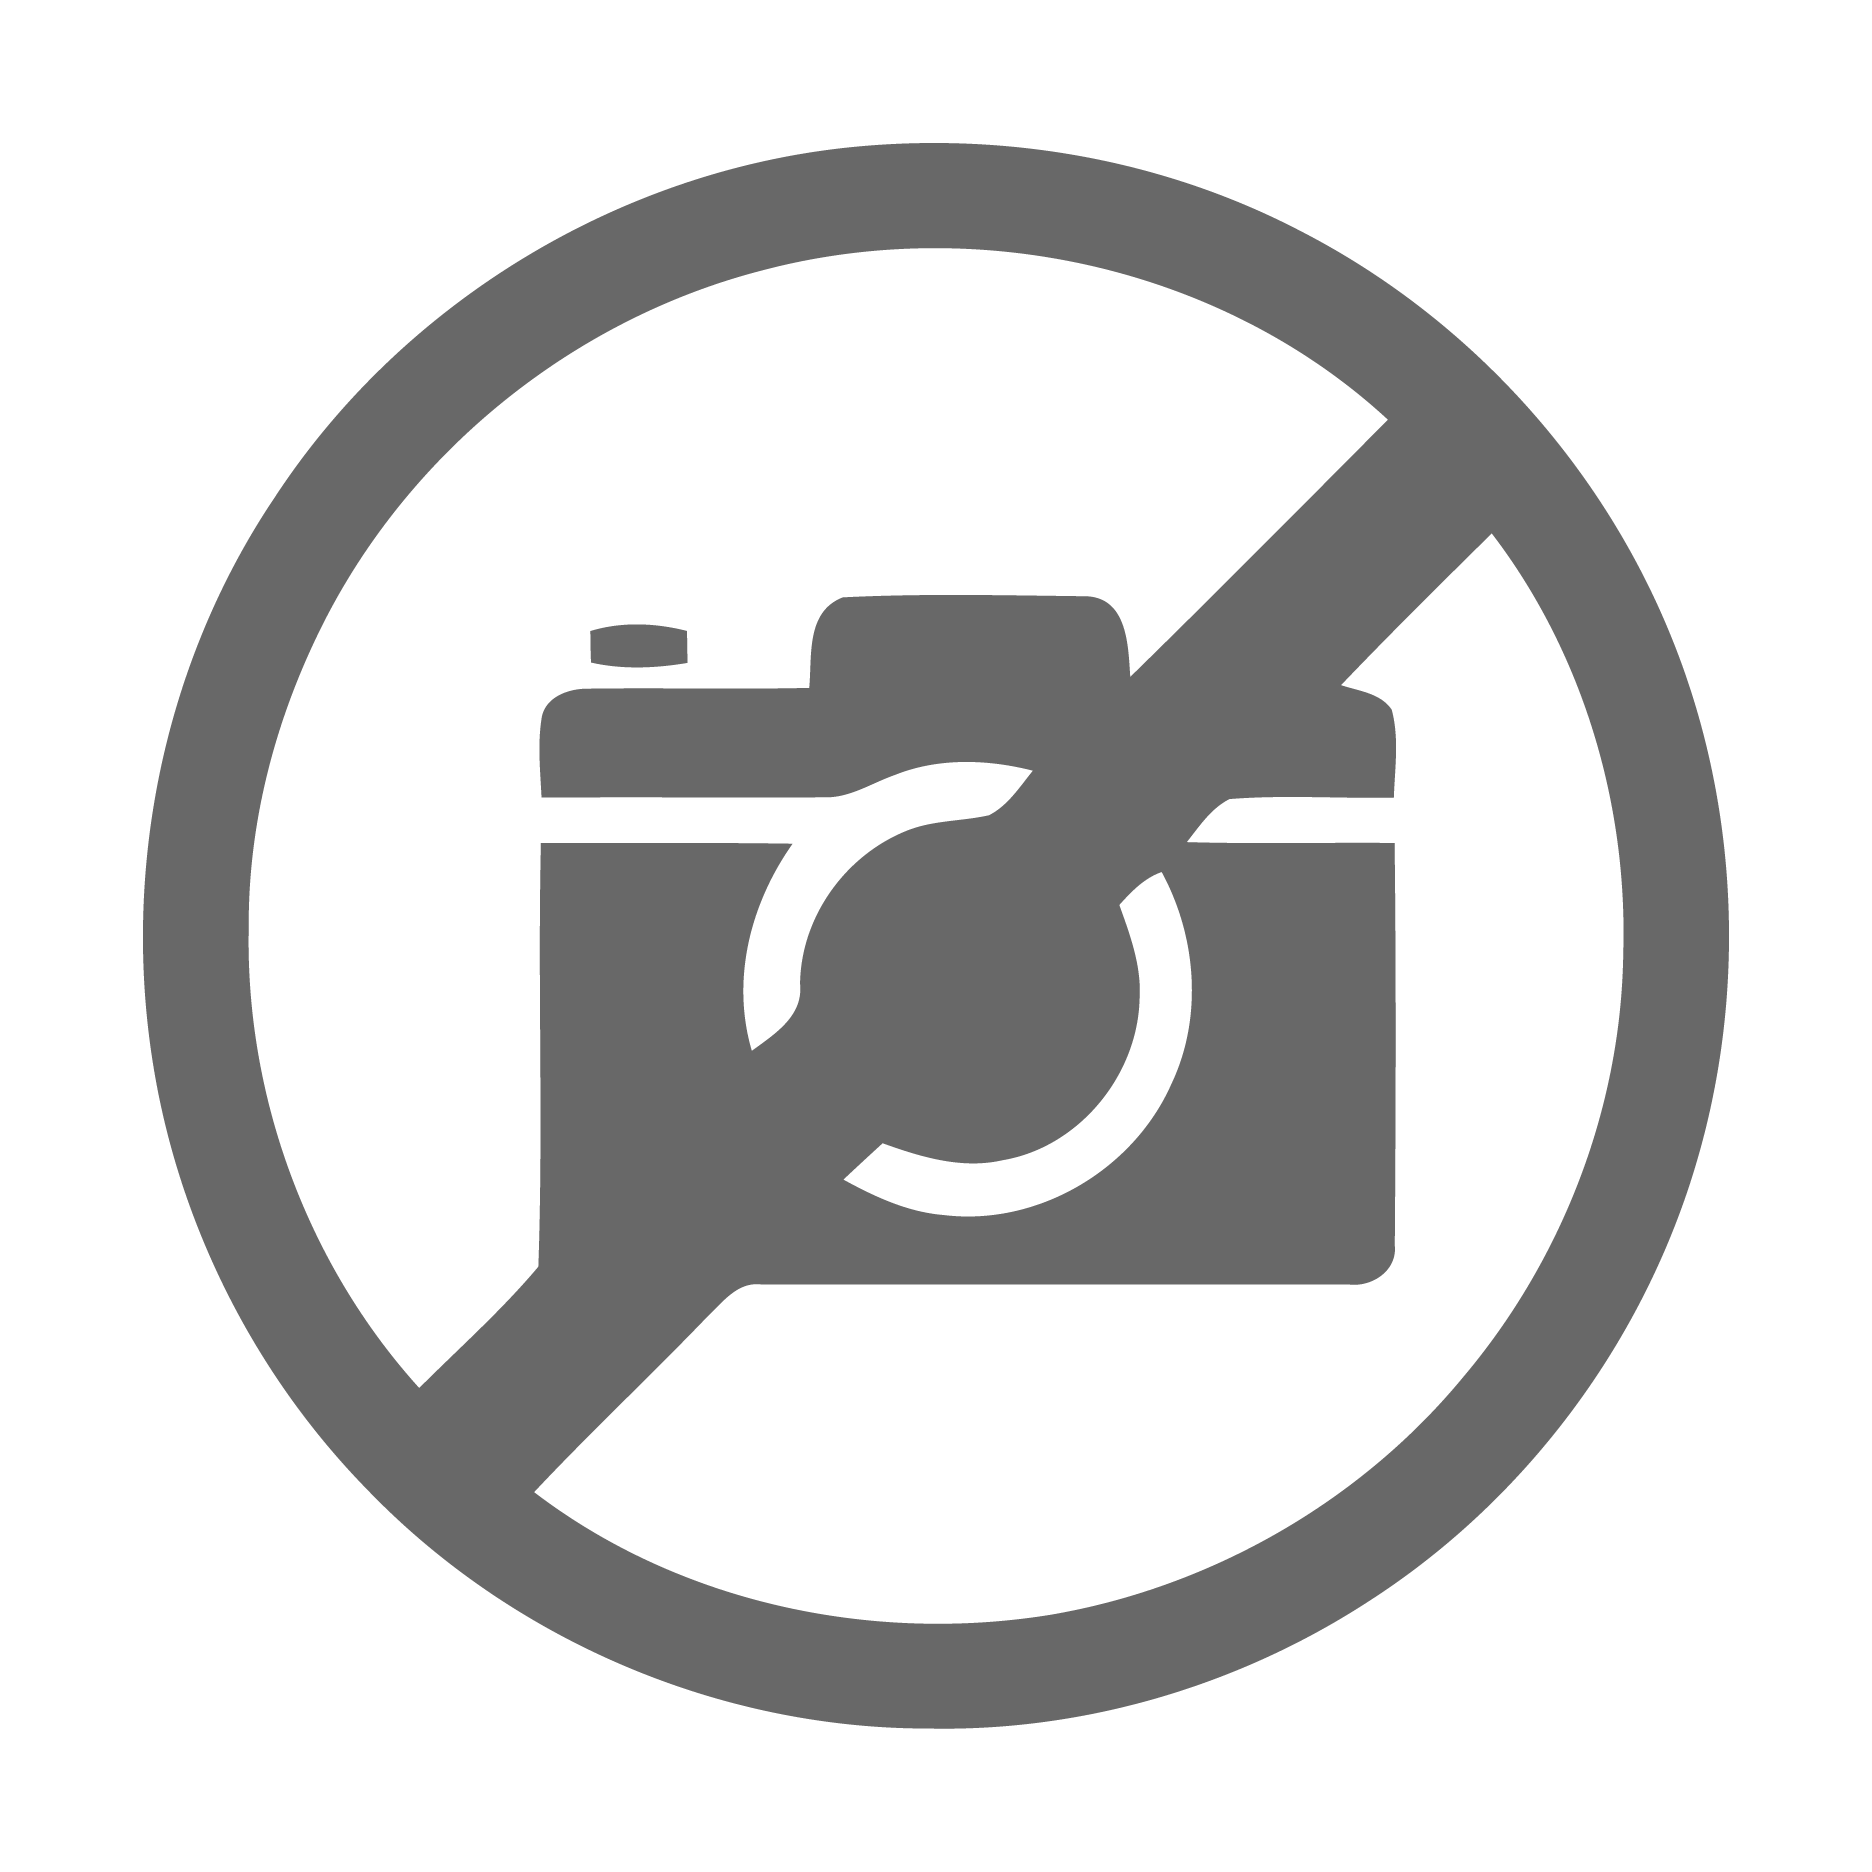 Icon . No image available png graphic free download